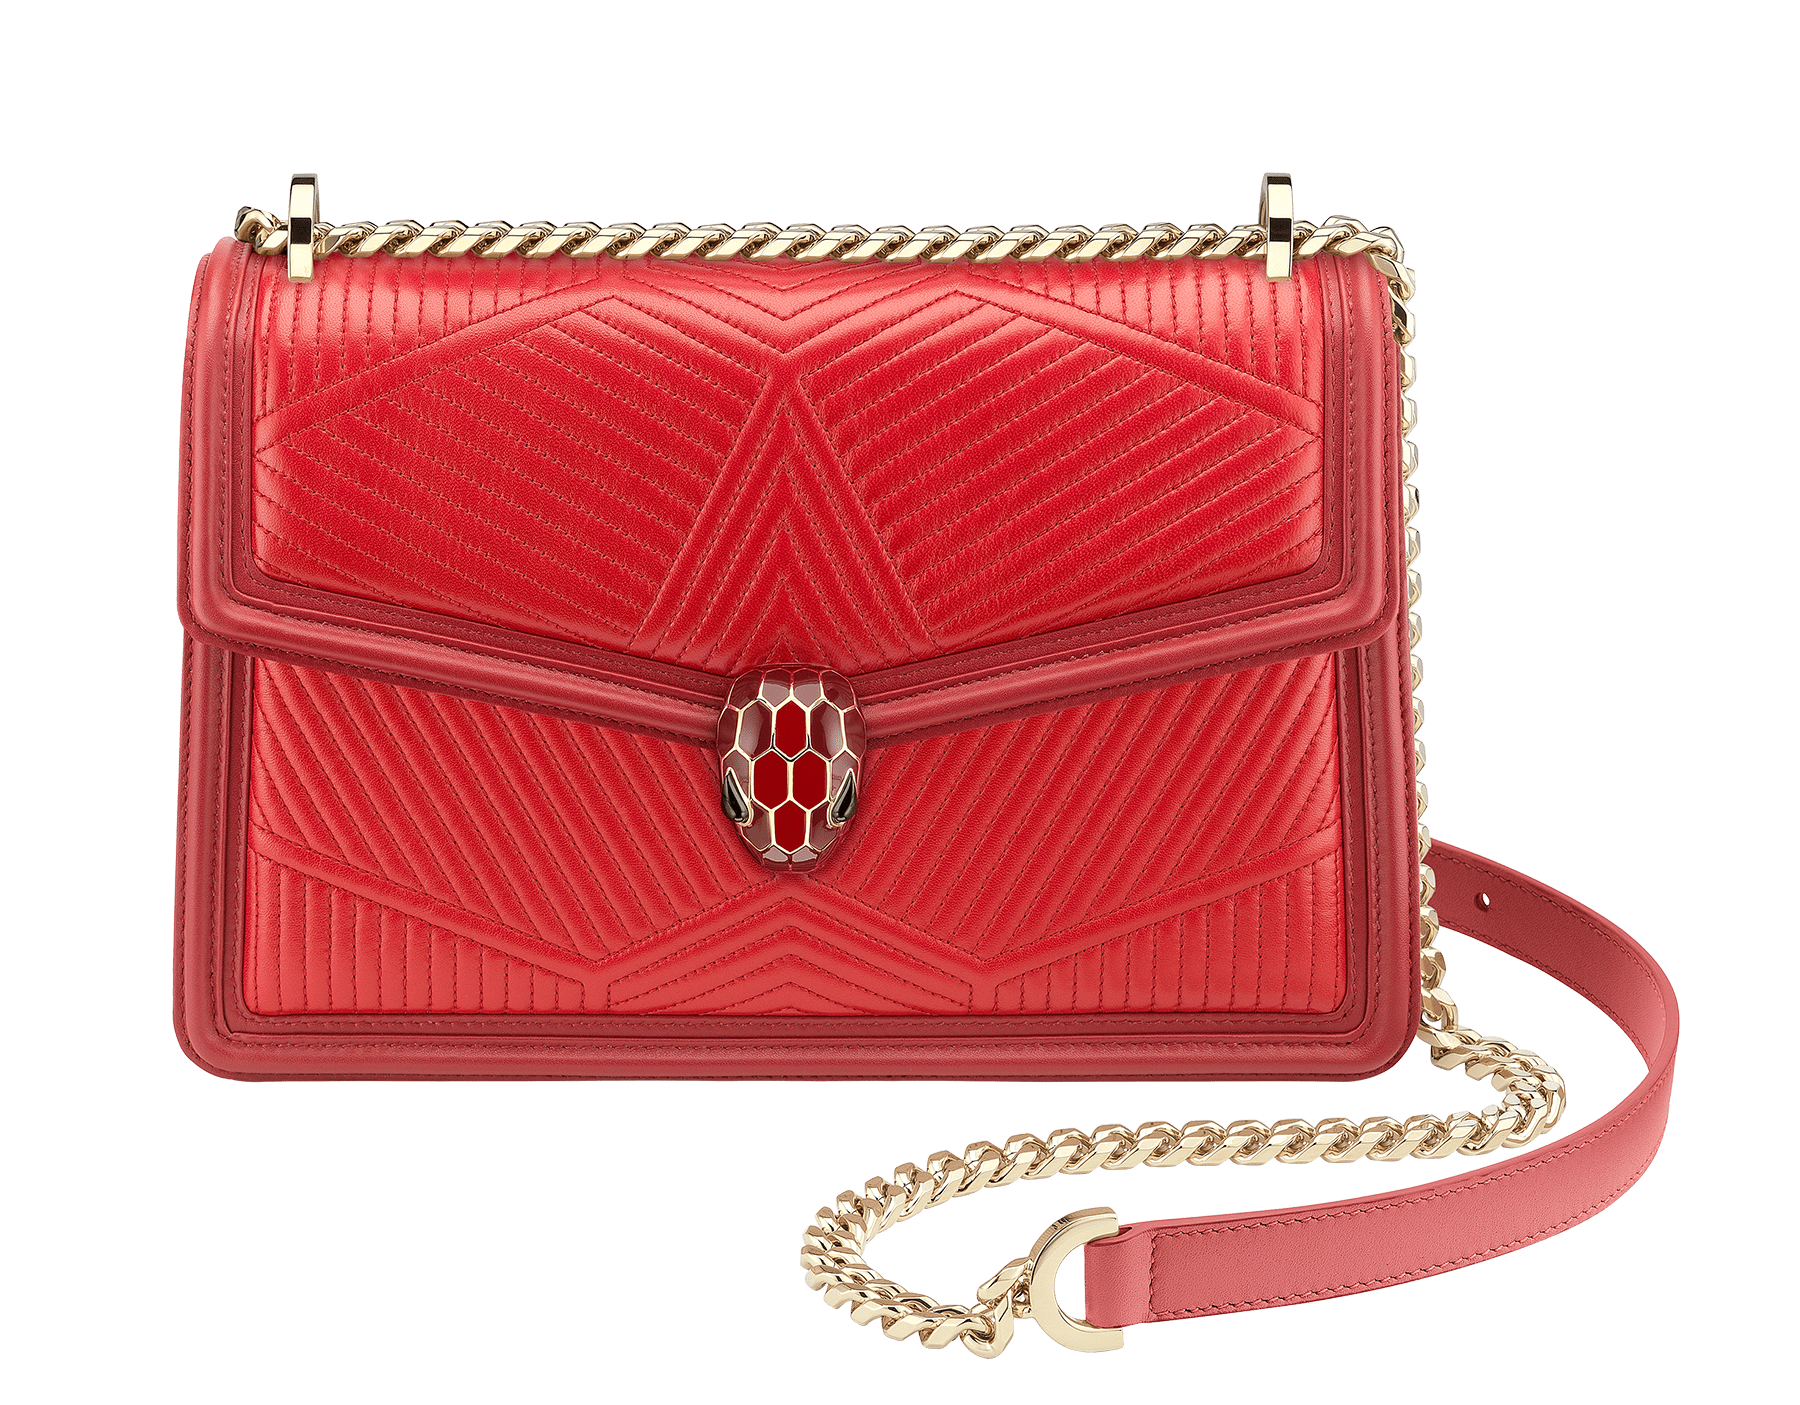 Shoulder bag Serpenti Forever featuring a Framed Quilted motif in white agate nappa and black smooth calf leather. Brass light gold plated tempting snake head closure in black and roman garnet enamel, with eyes in black onyx. 922-FQDe image 1